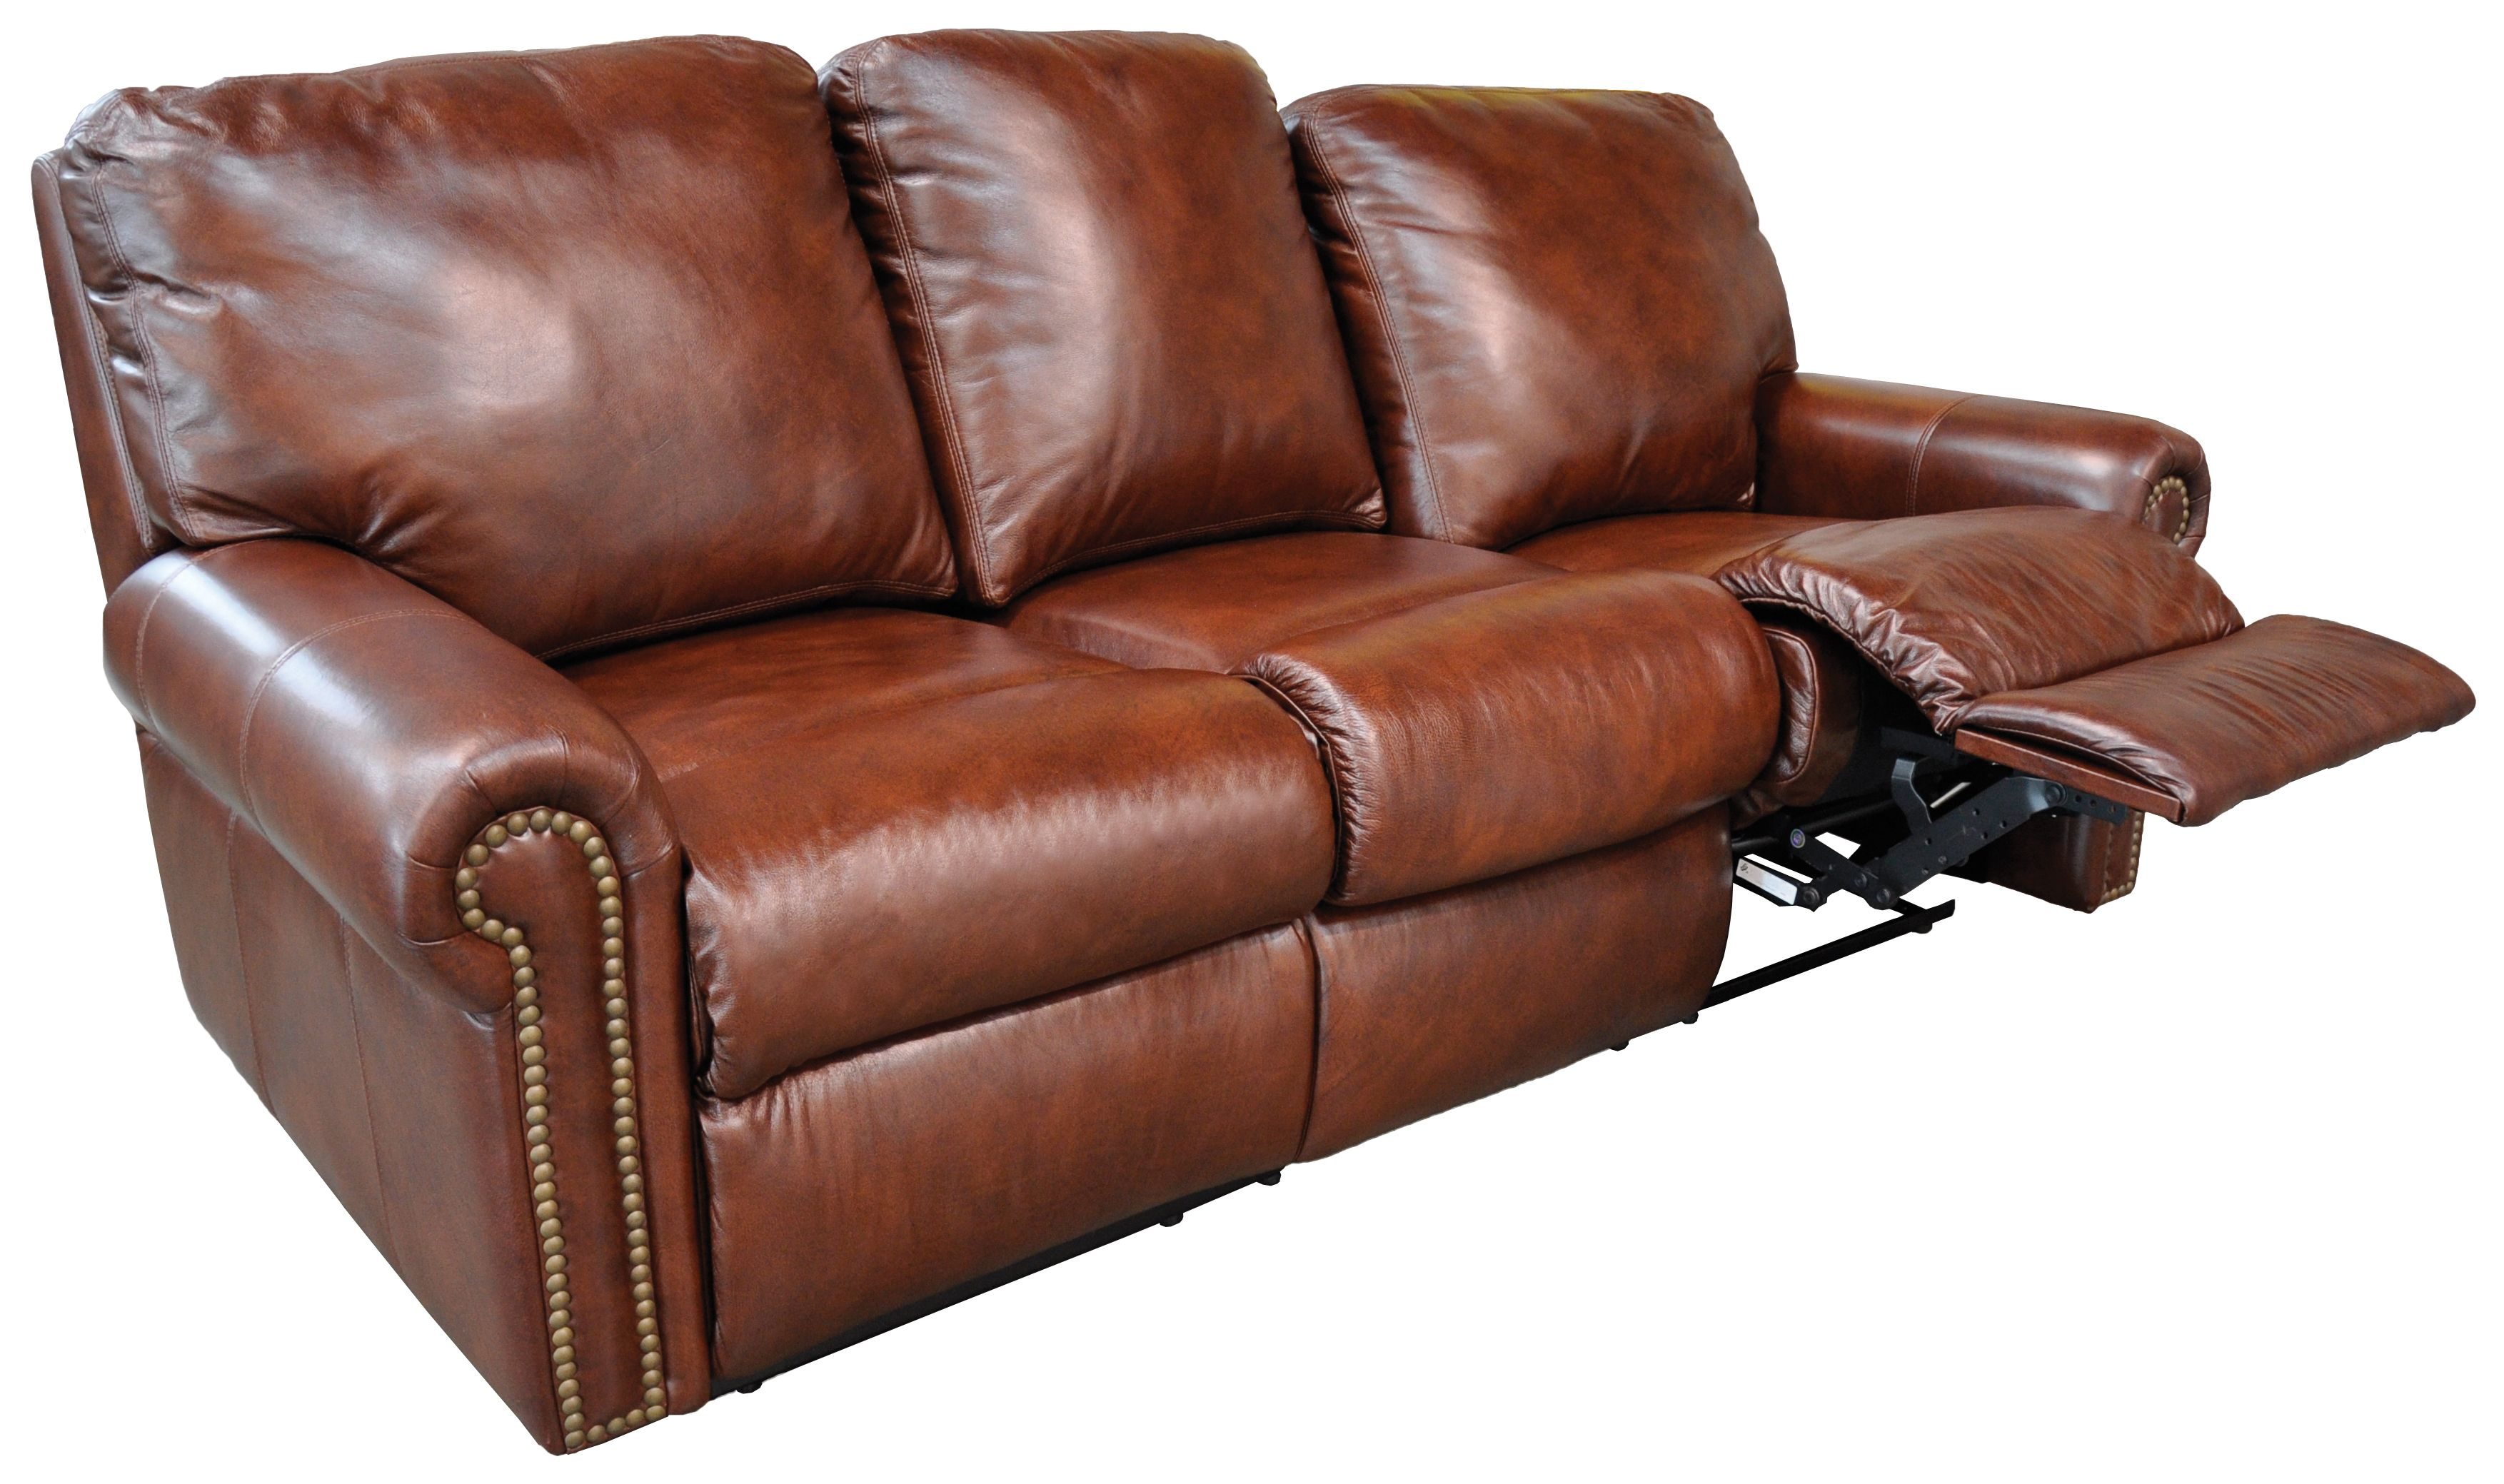 Furniture Omnia Leather Fairmont Reclining Sofa Top Full Grain